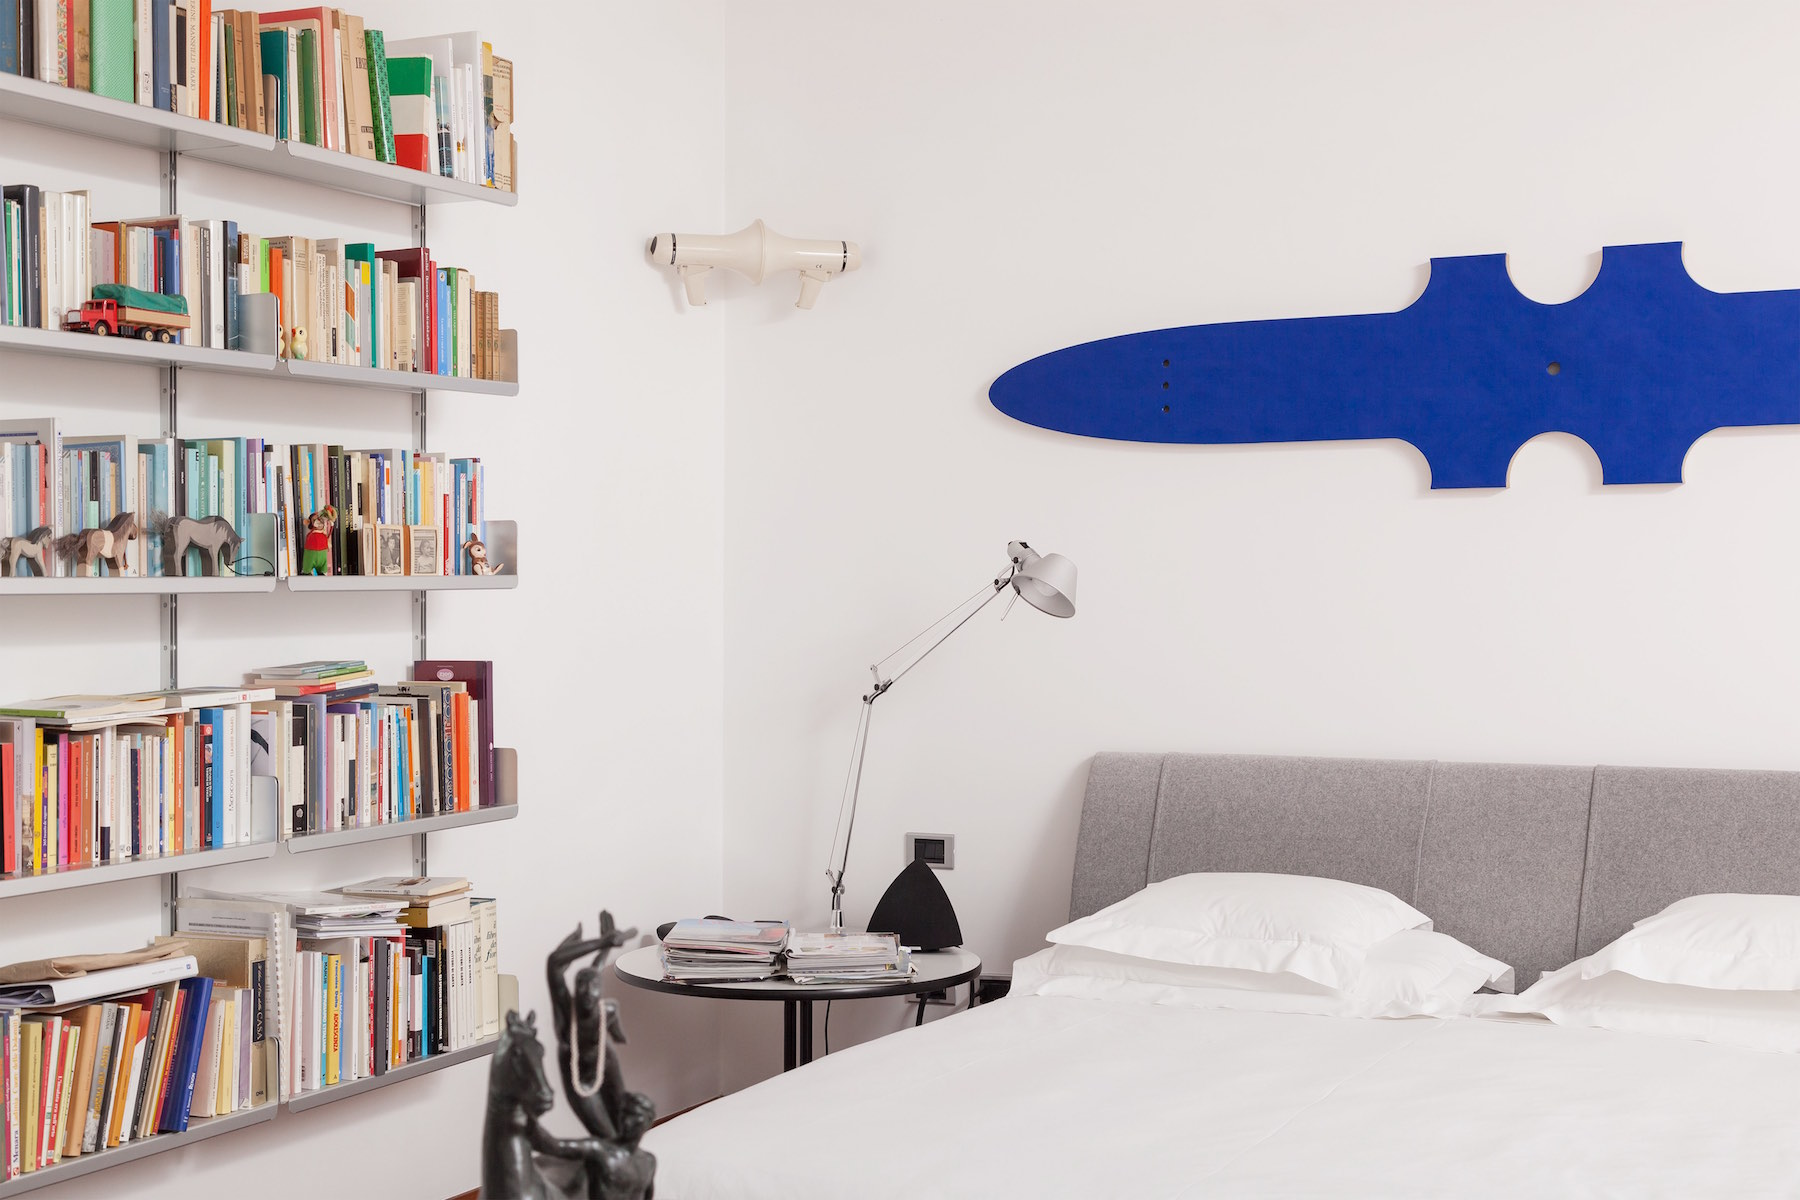 Works by Michael Ray, Ceal Floyer in a bedroom. Photo: Pietro Cocco. Courtesy of Mauro De Iorio.